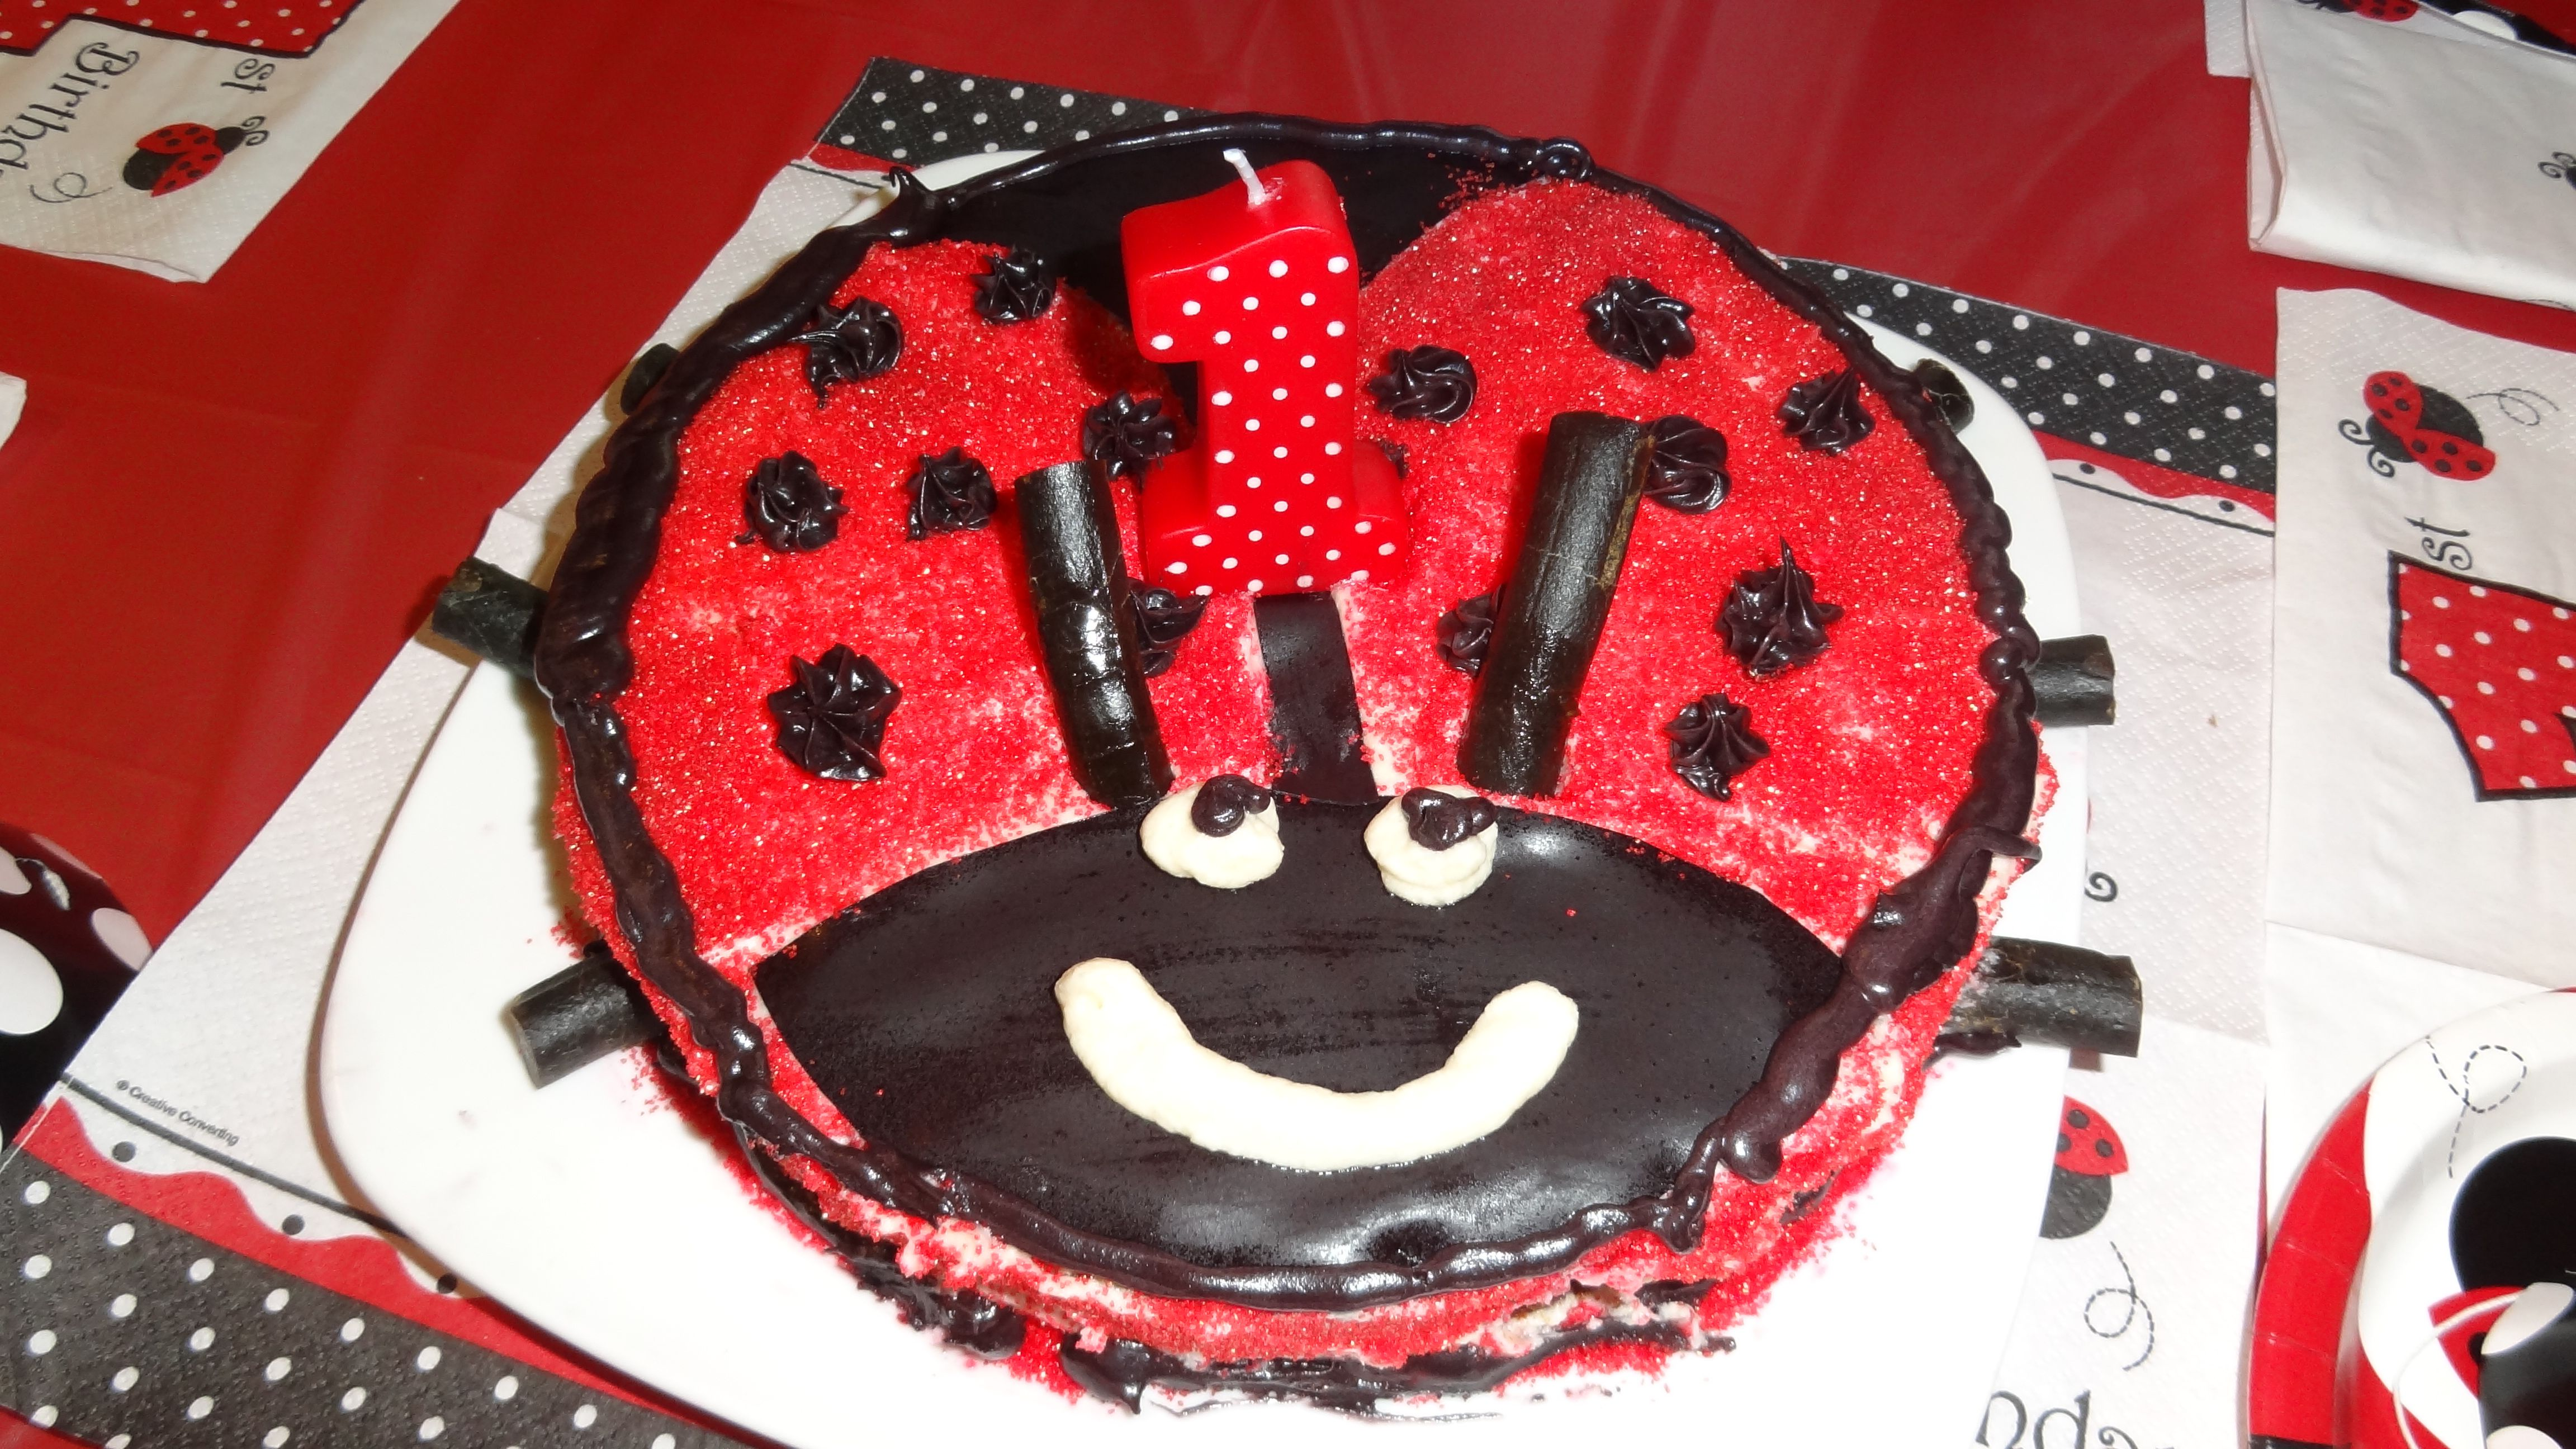 This was the ladybug cake that G-Ma made for our little peanut's 1st Birthday Party! #YoYoBirthday